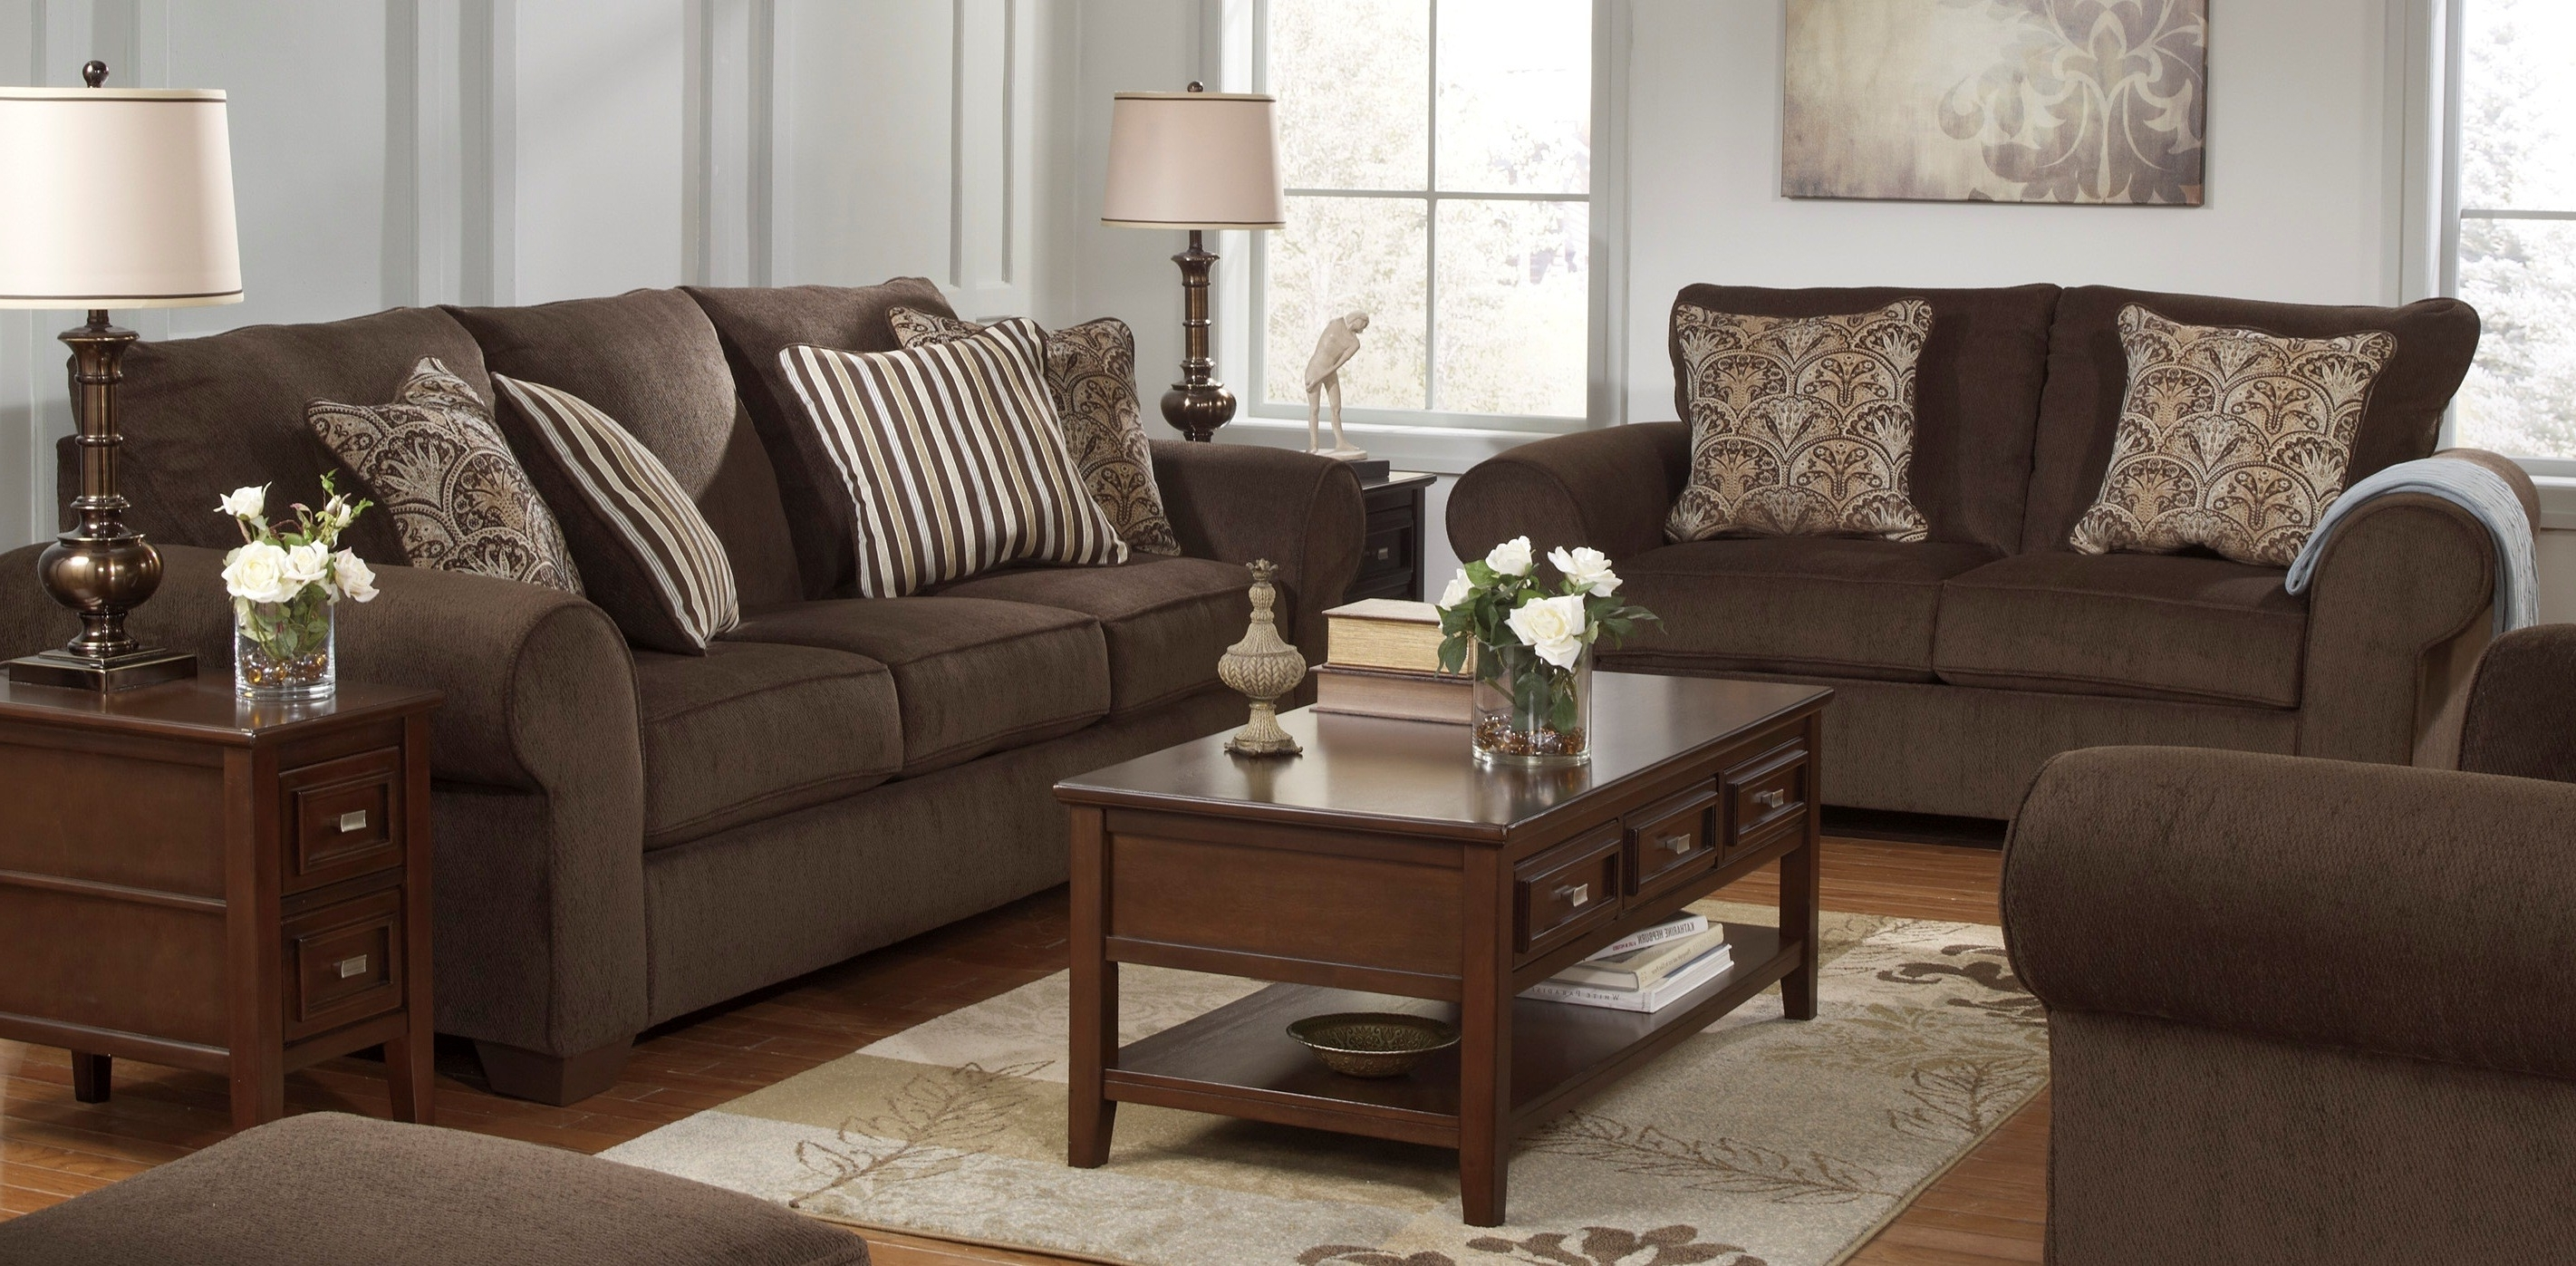 Uncategorized. Simple Macy's Living Room Furniture: Sofa Lounge Pertaining To Trendy Living Room Sofa Chairs (Gallery 12 of 20)